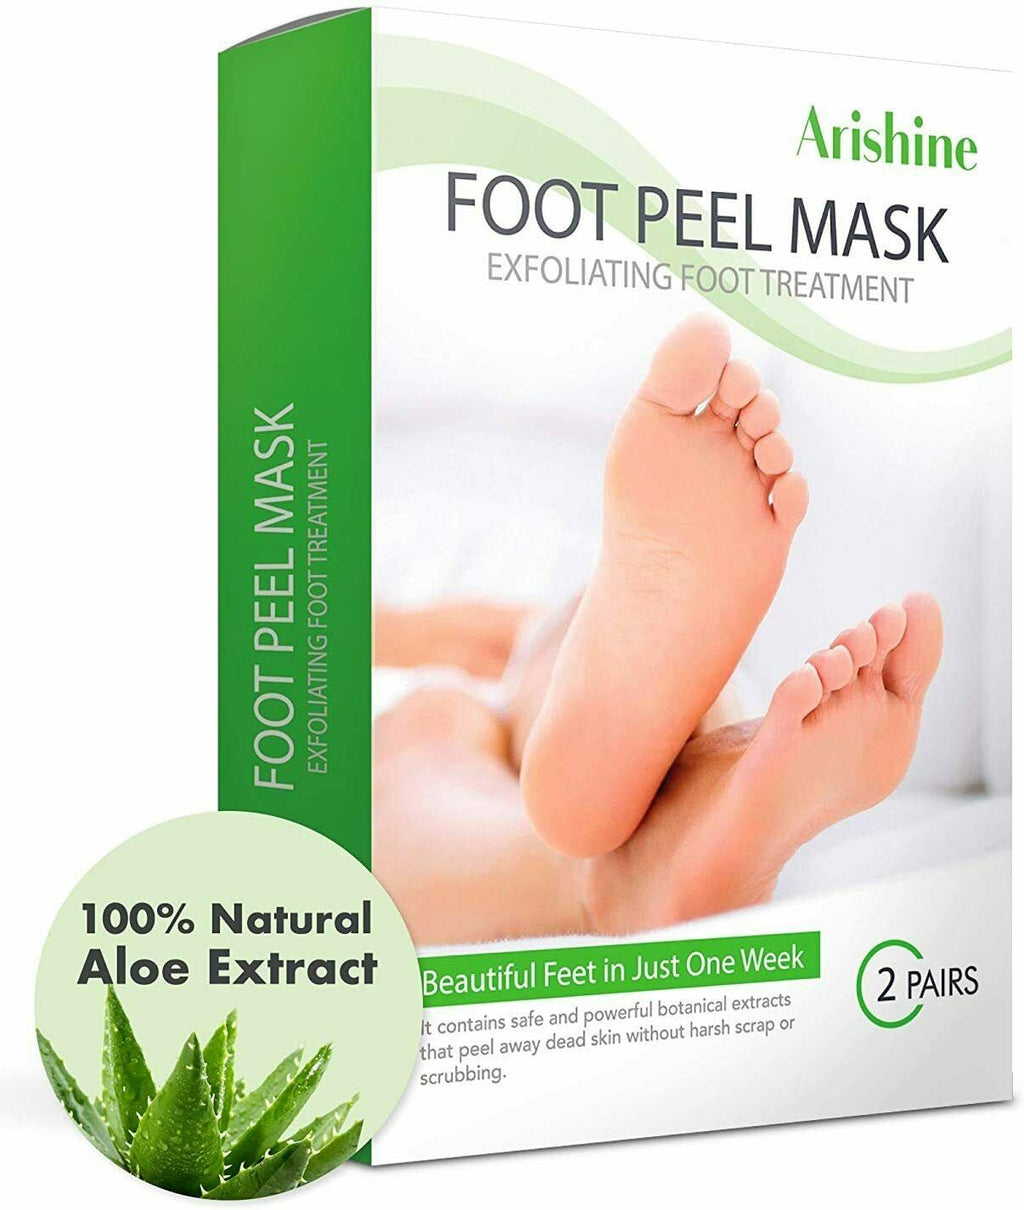 Arishine Foot Peel Mask, Exfoliating Foot Mask Get Soft Baby Foot 2 Pairs